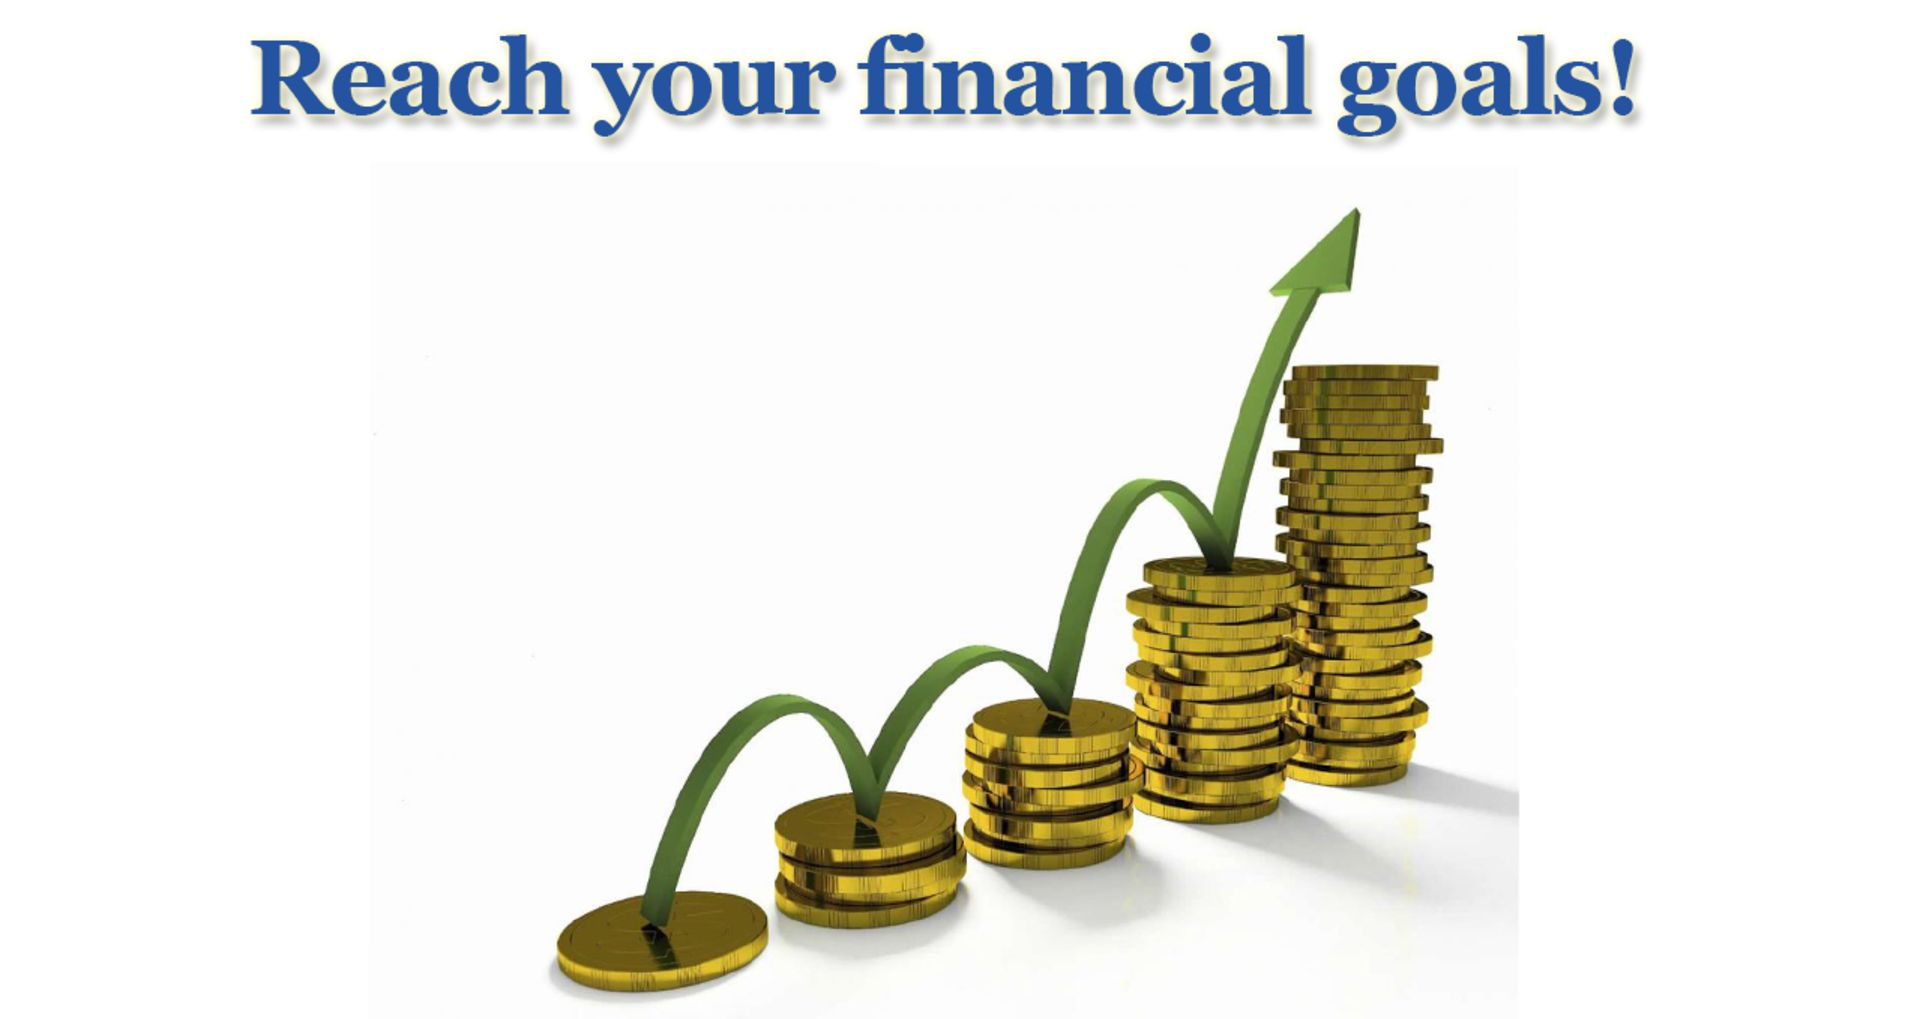 Achieve Your Financial Goals in 2019